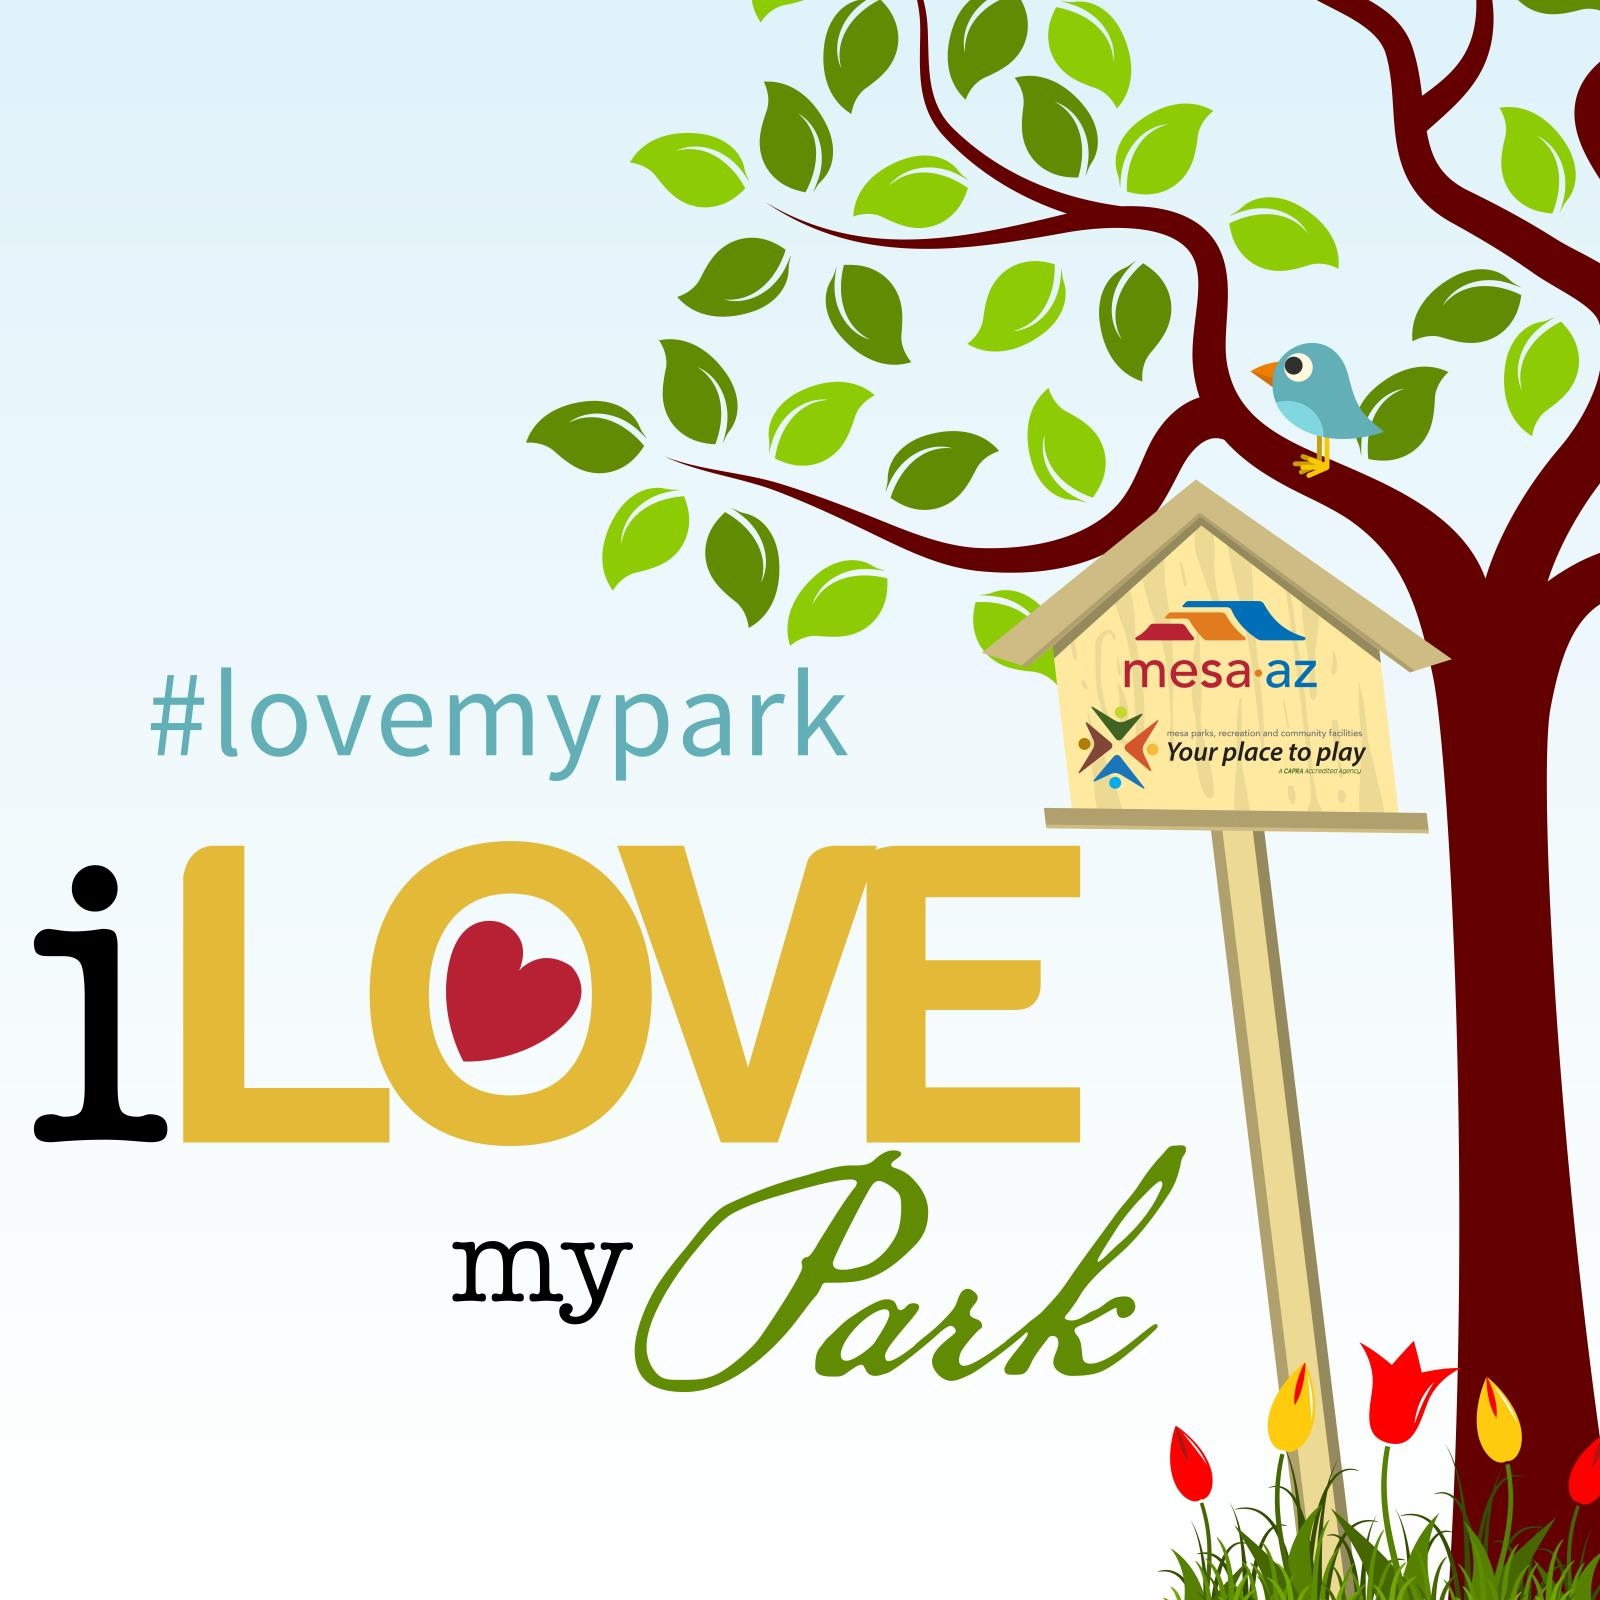 City of Mesa Love My Park